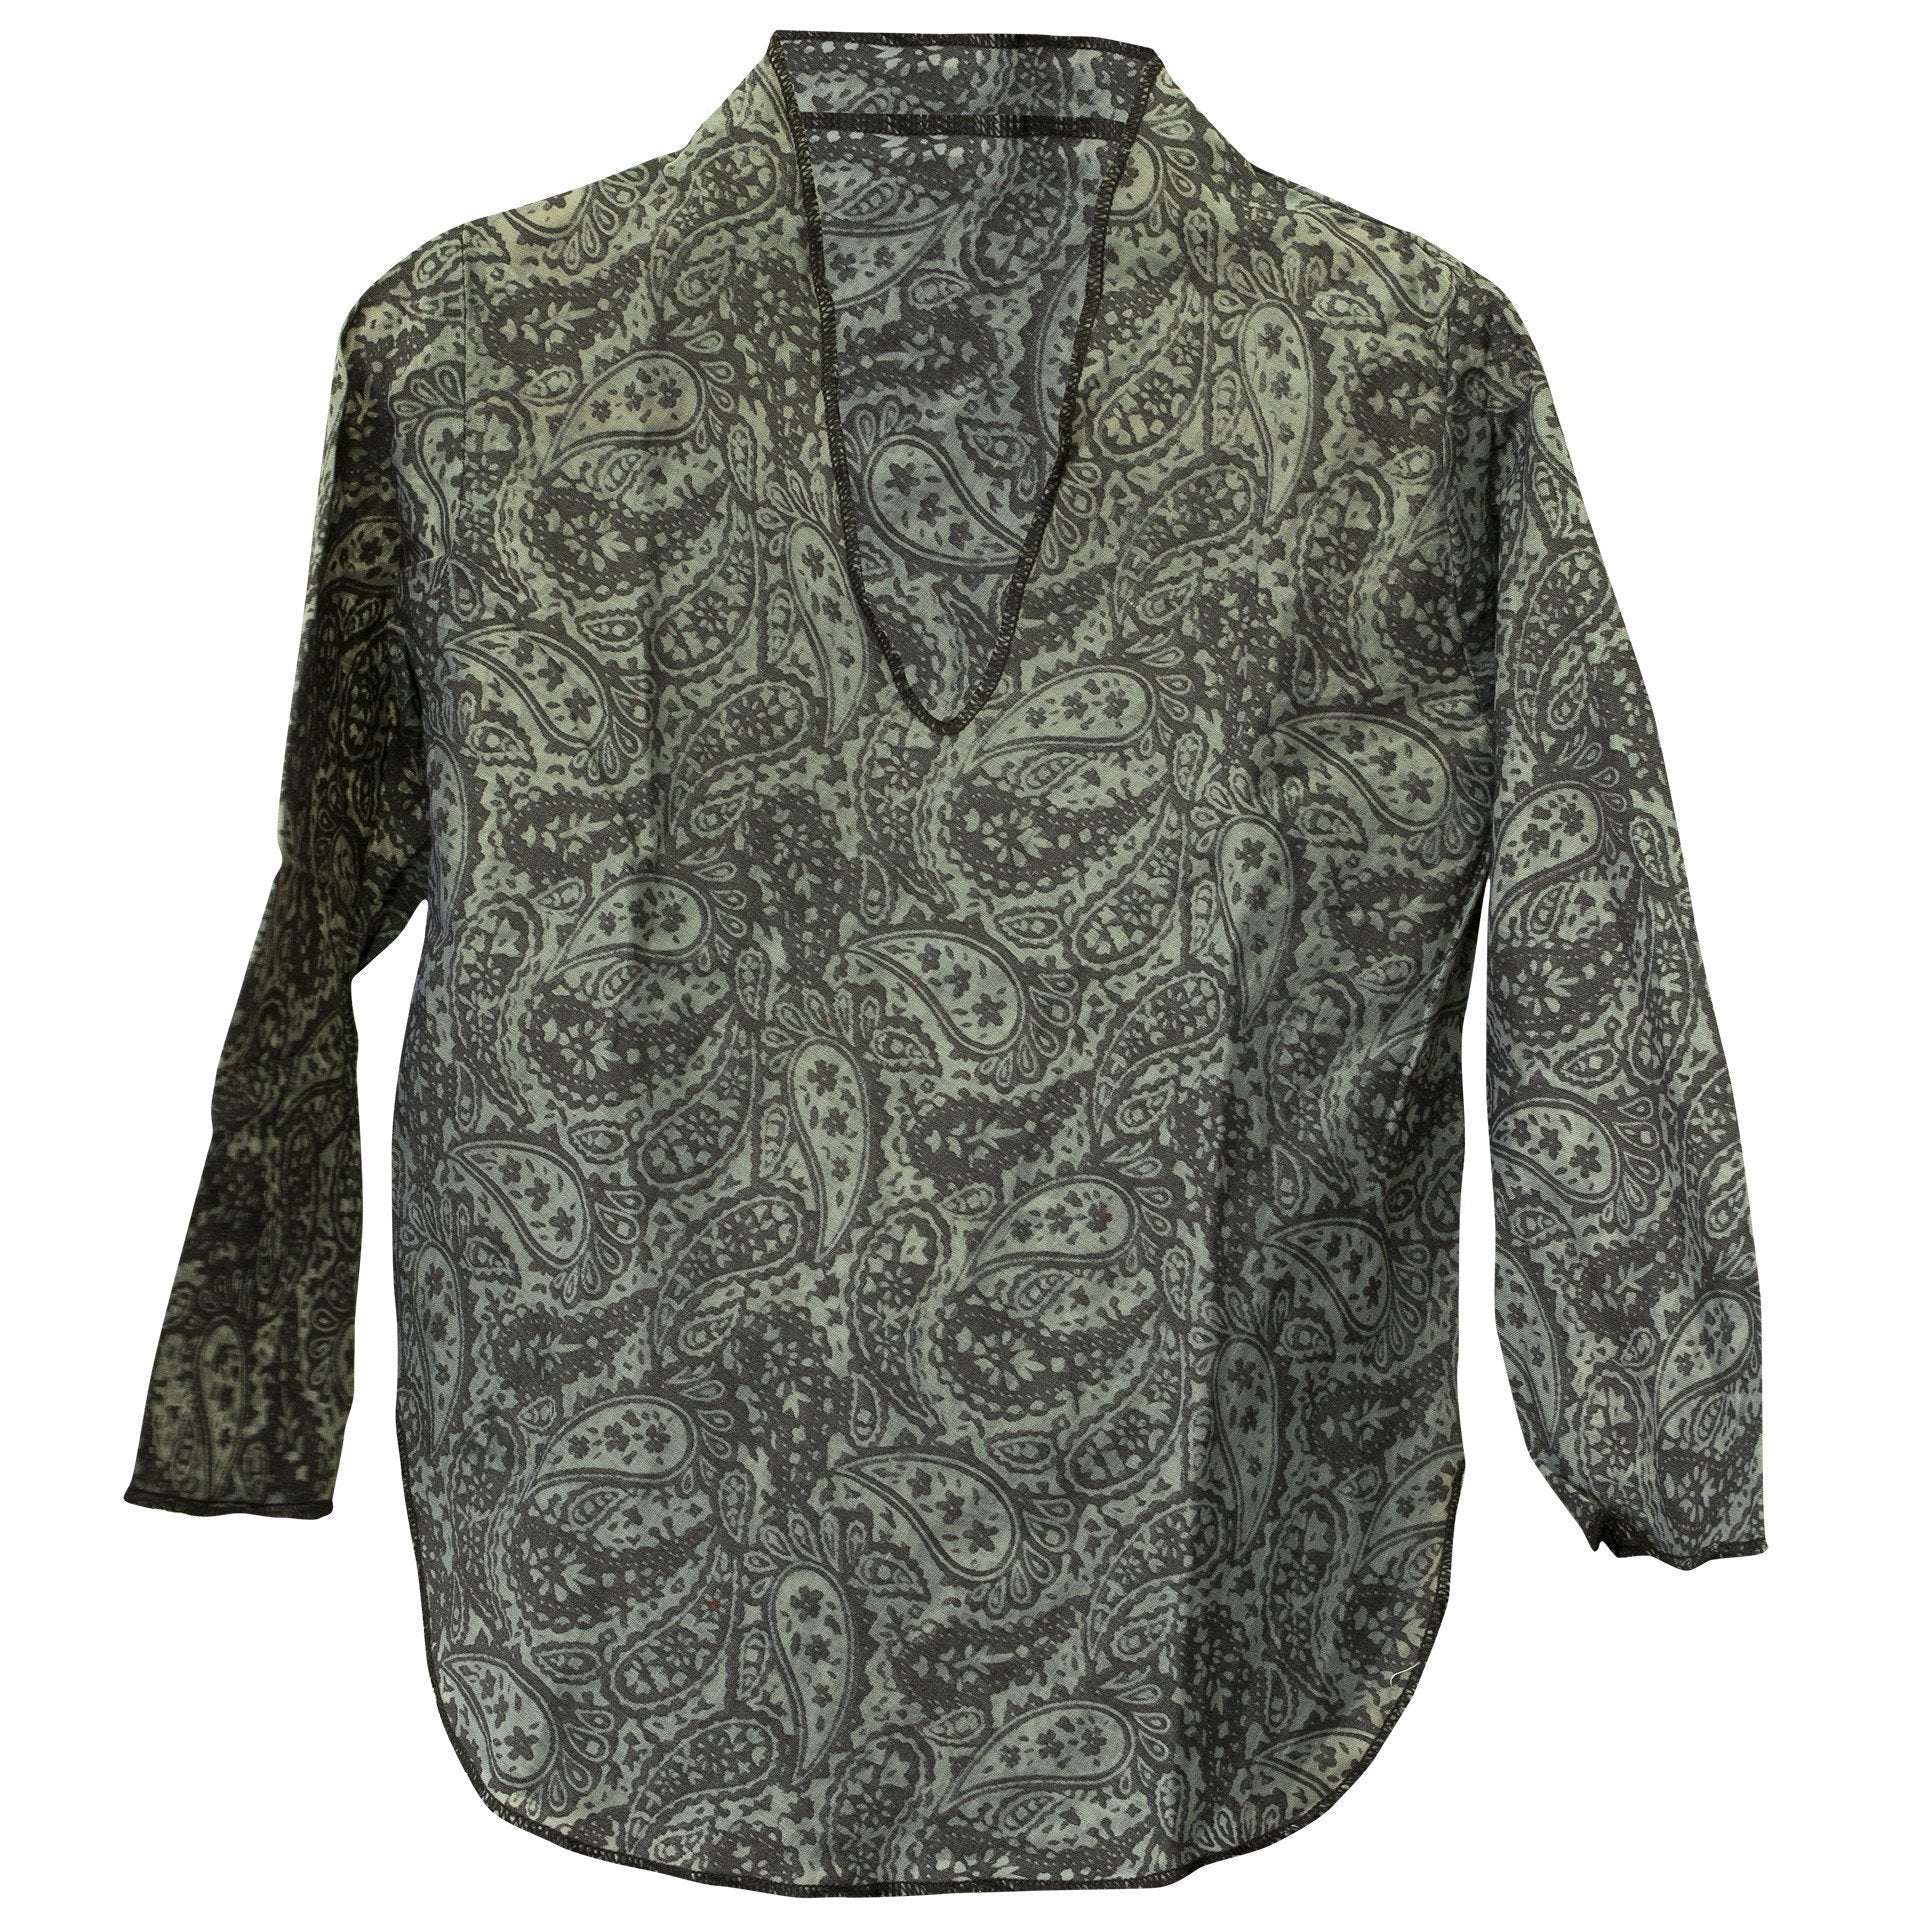 Kids Boy Girl Unisex Cotton Shirt Top V Neck 3/4 sleeve S Paisley - CCCollections